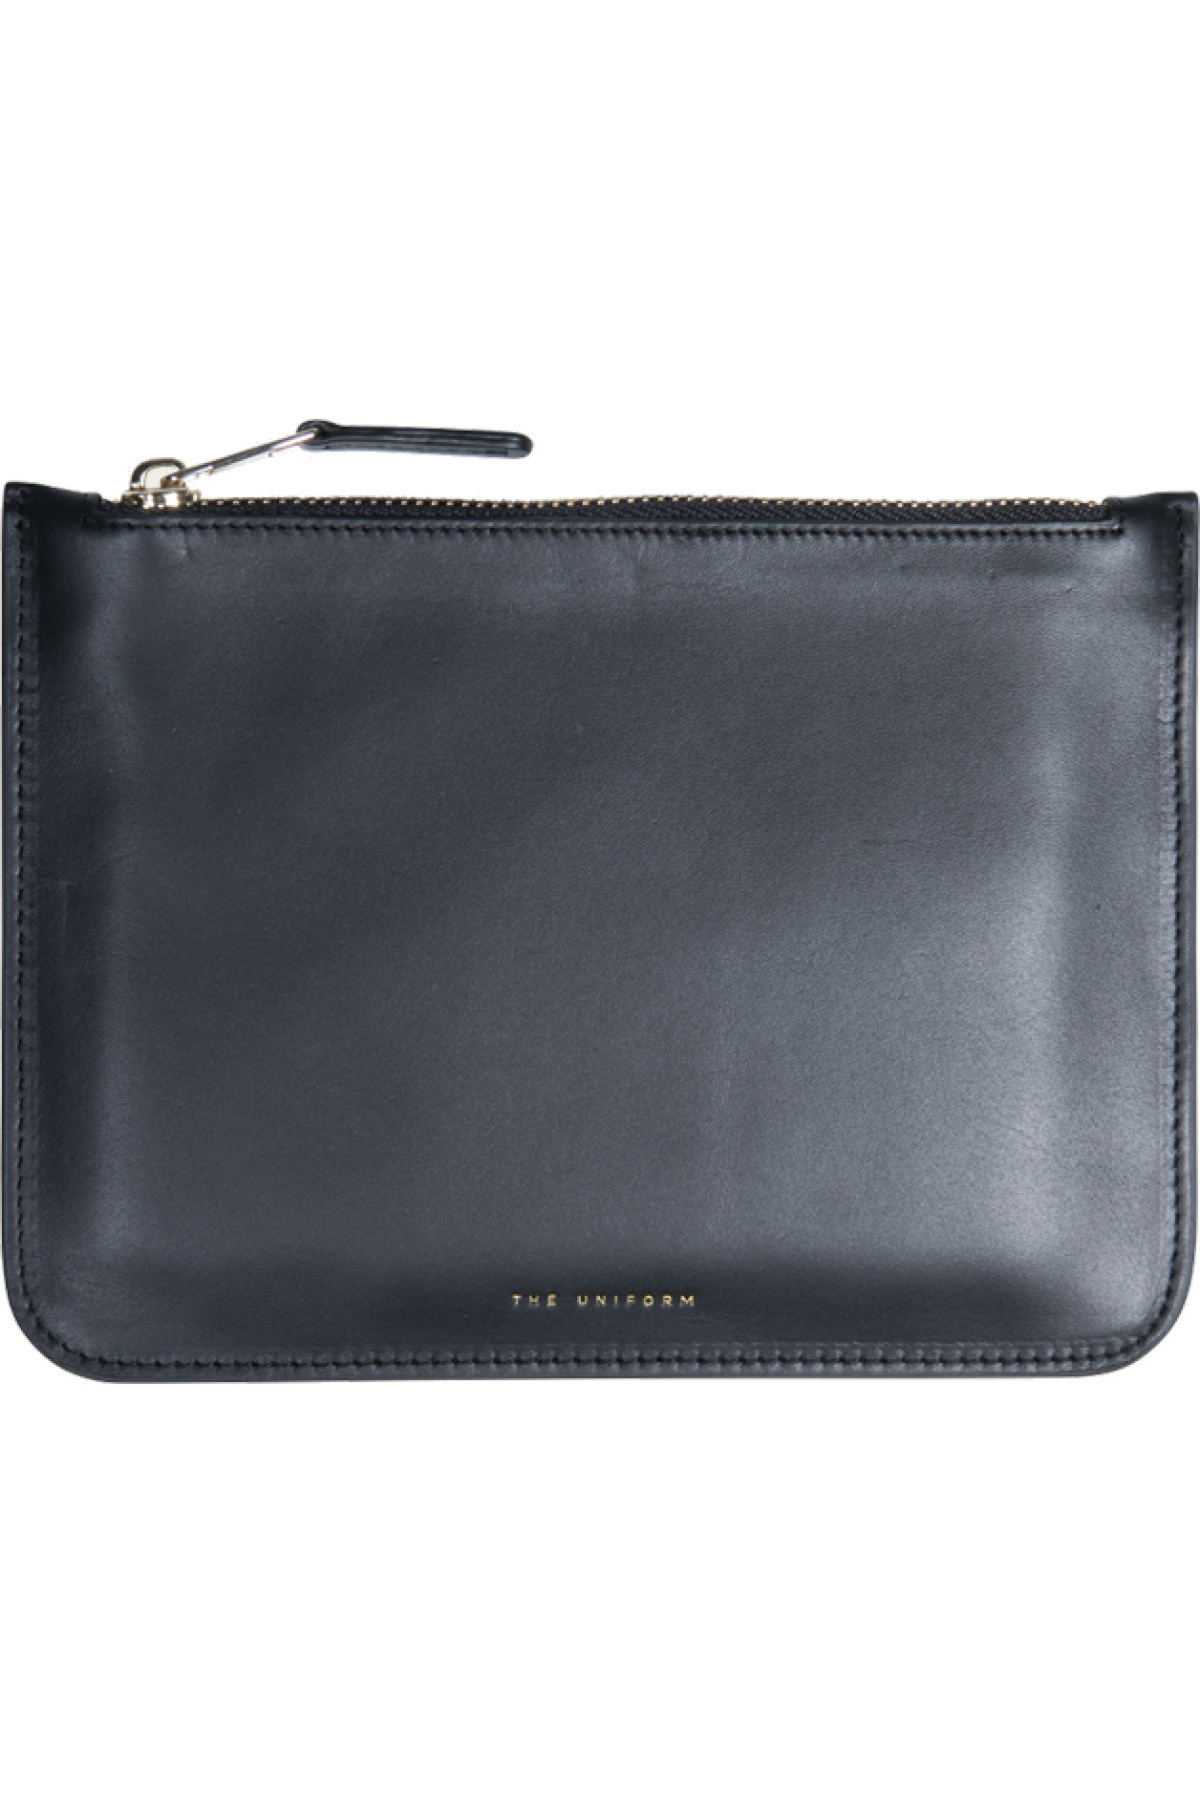 The Uniform Clutch in Schwarz 426470